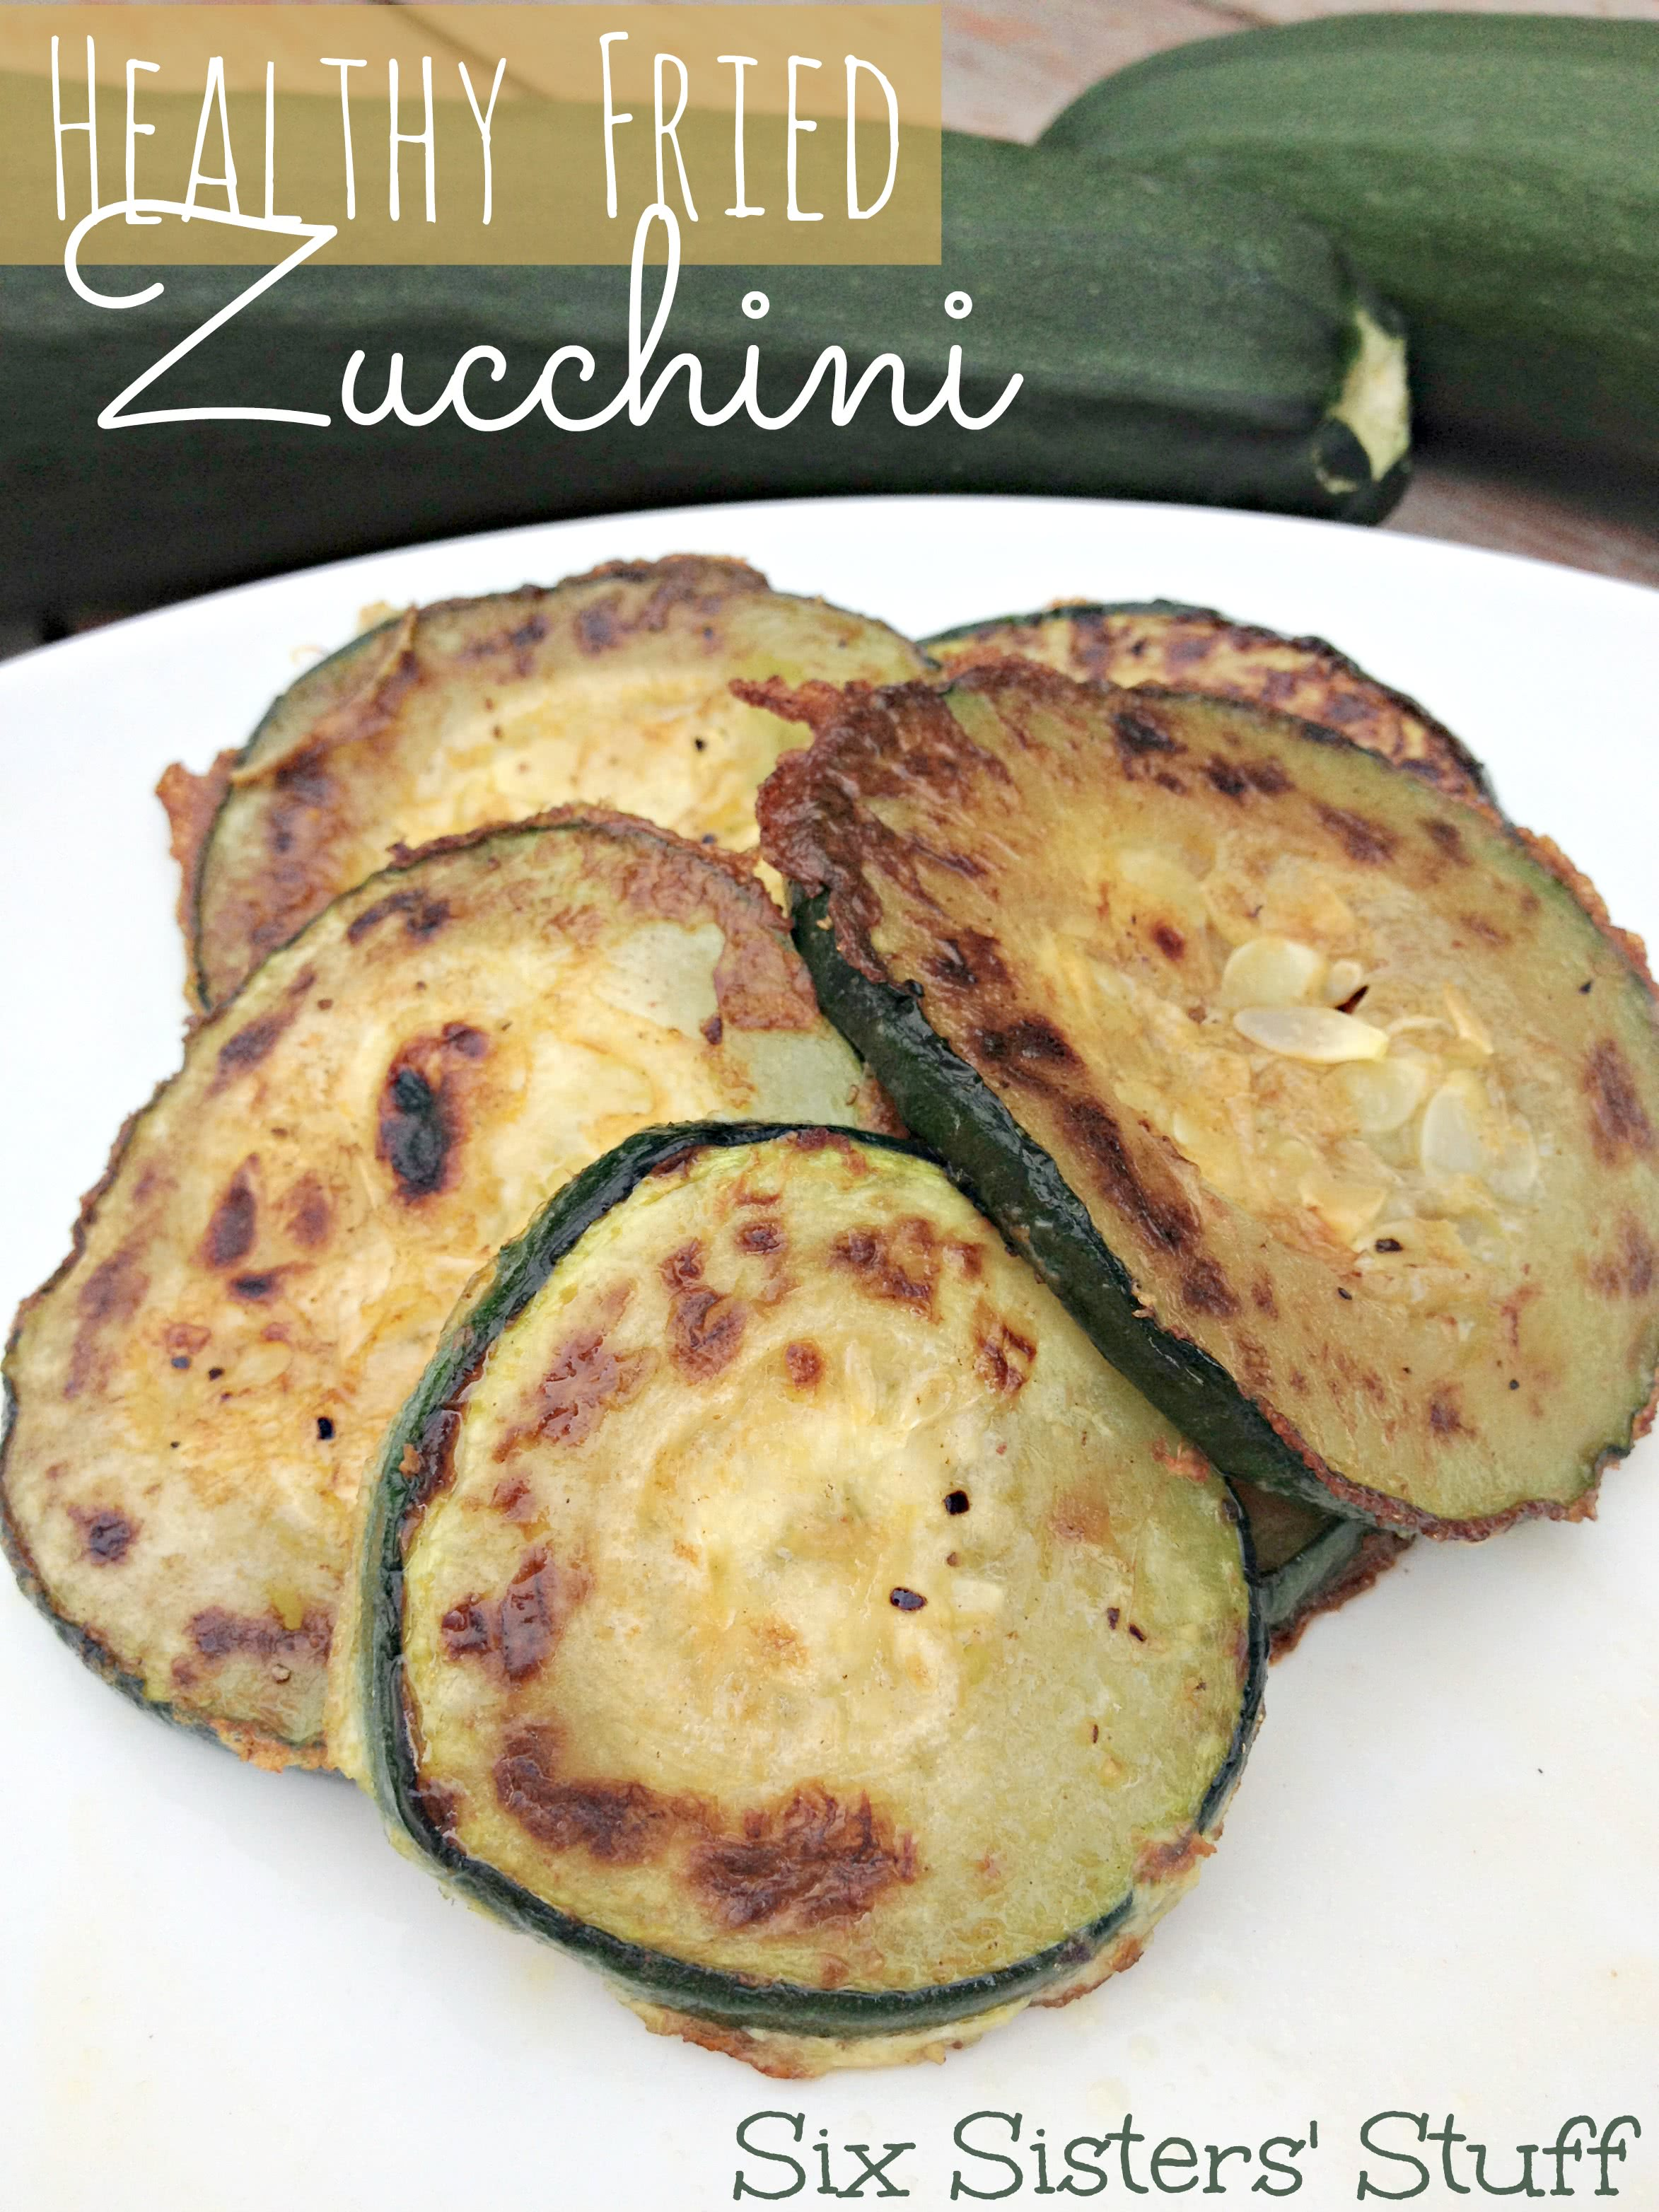 Healthy Fried Zucchini